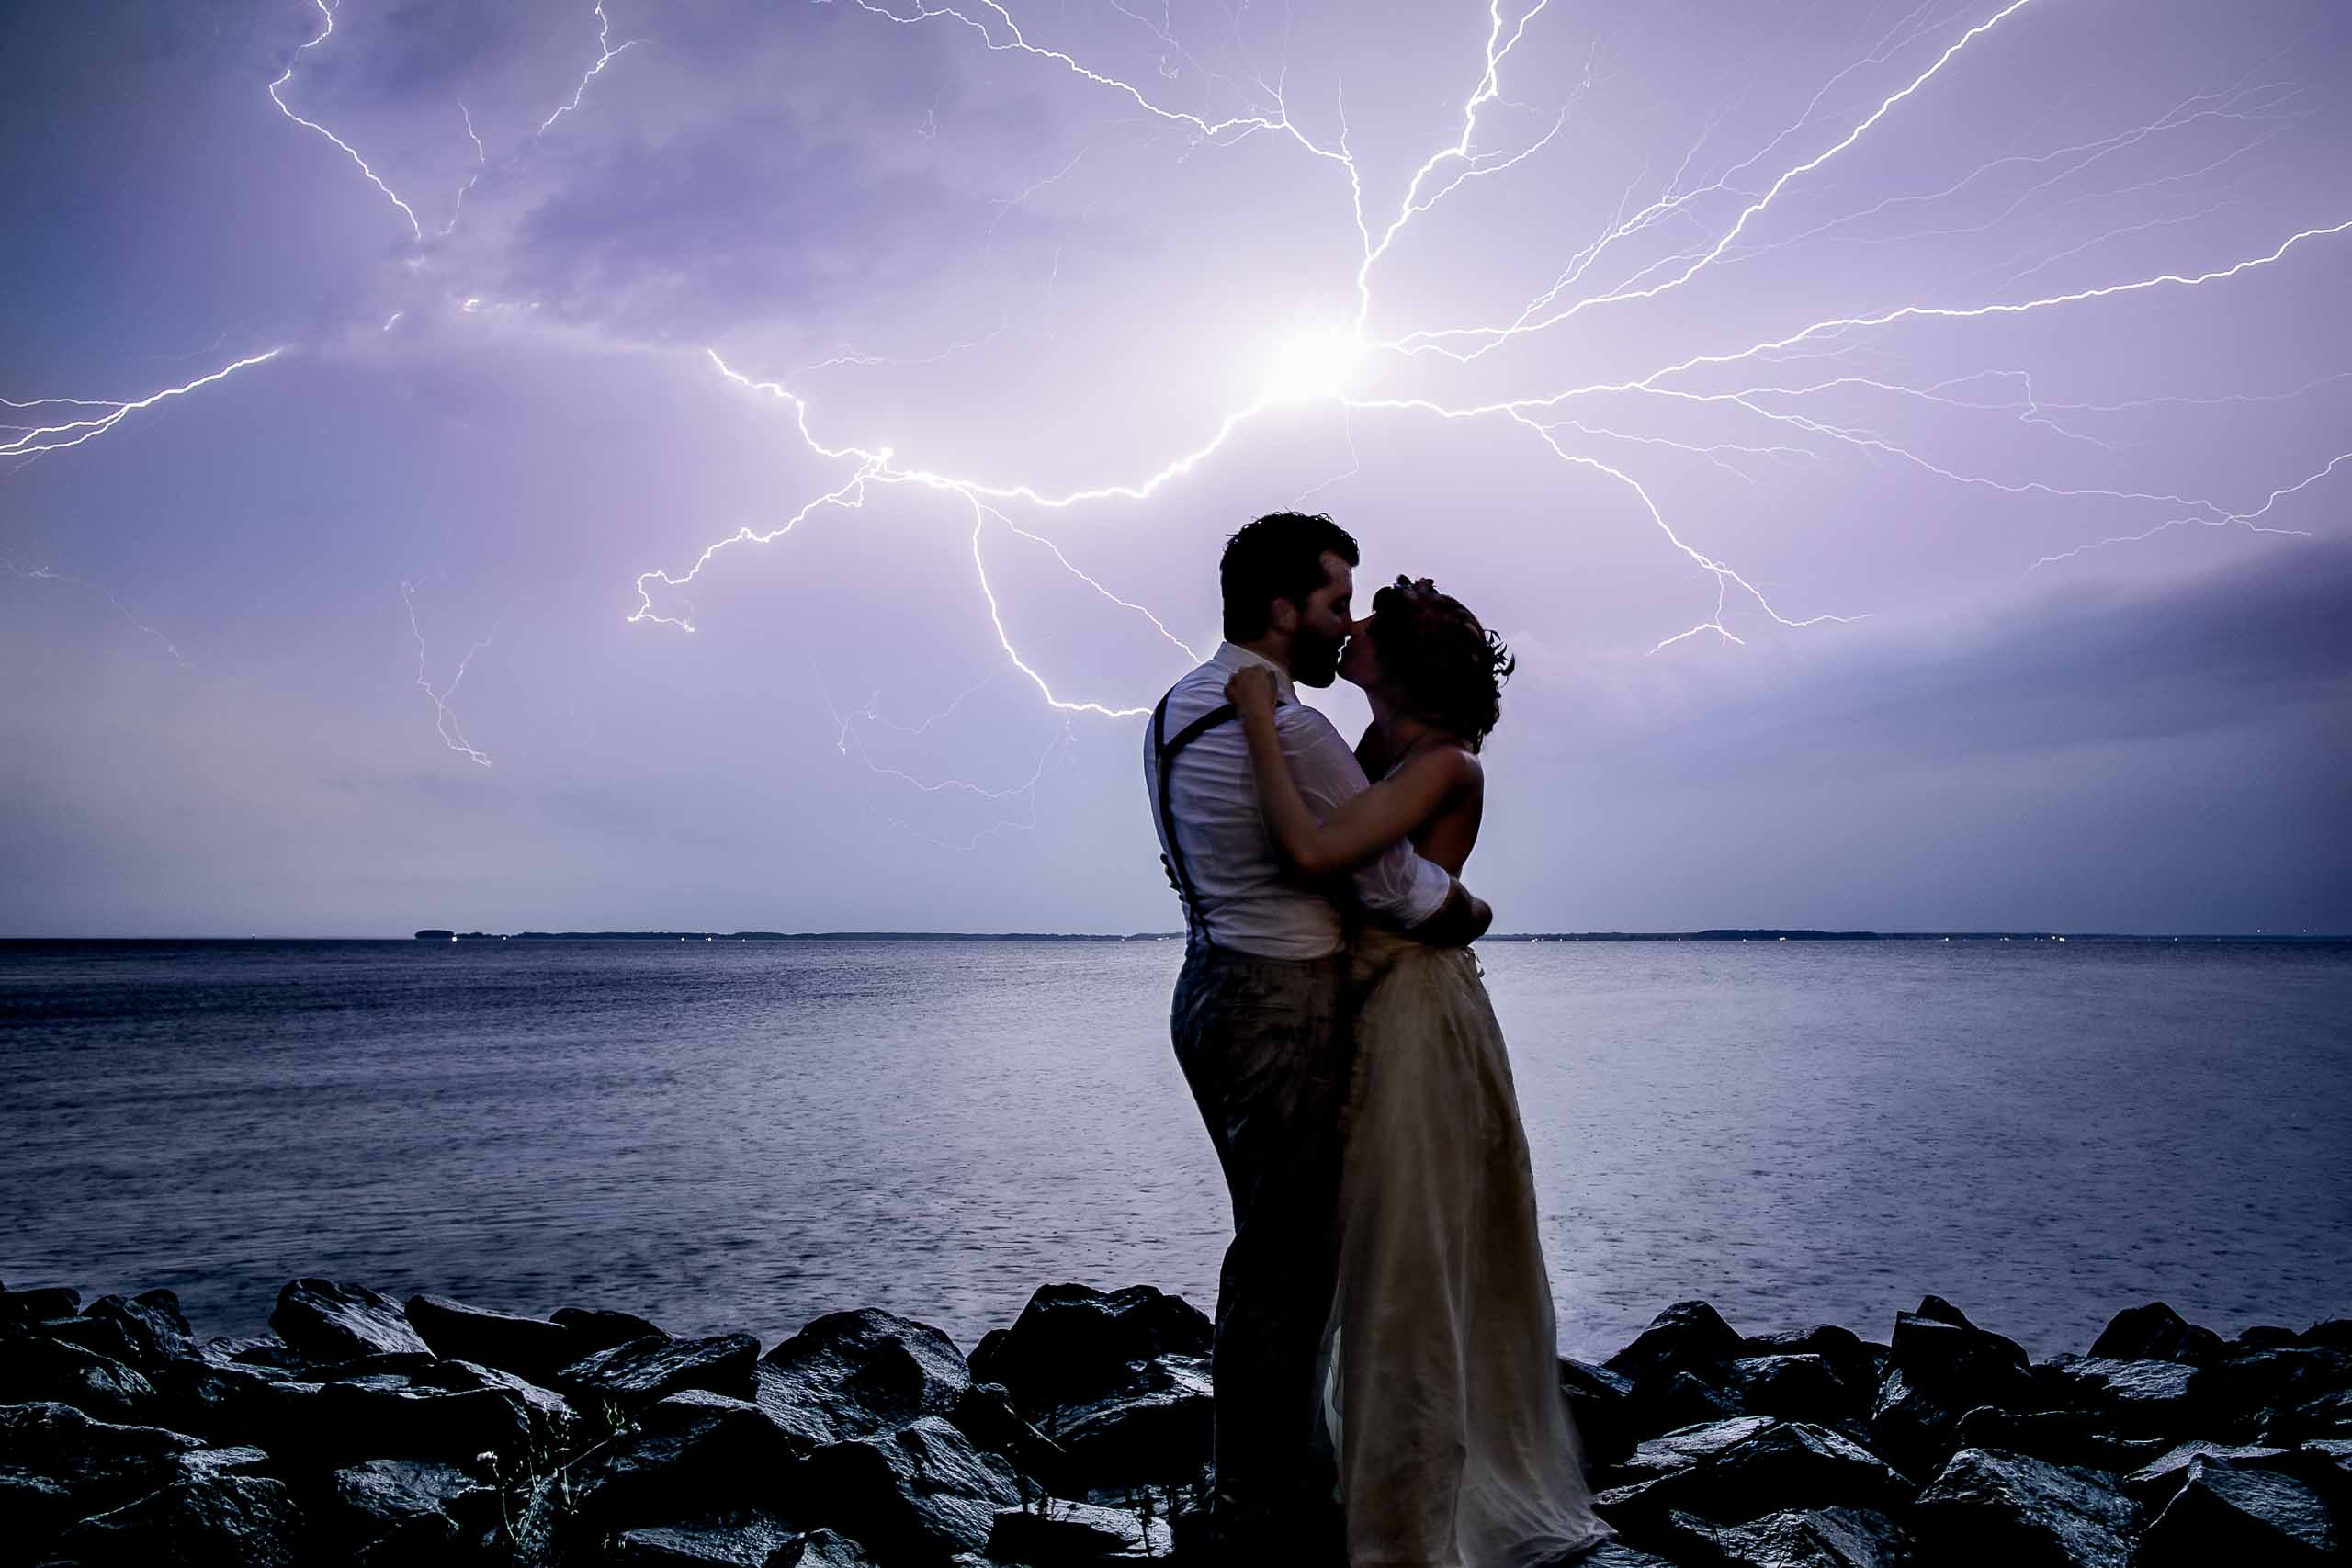 Bride and Groom captured with Lightning over their heads. Fearless Award Winning Photo by josandtree